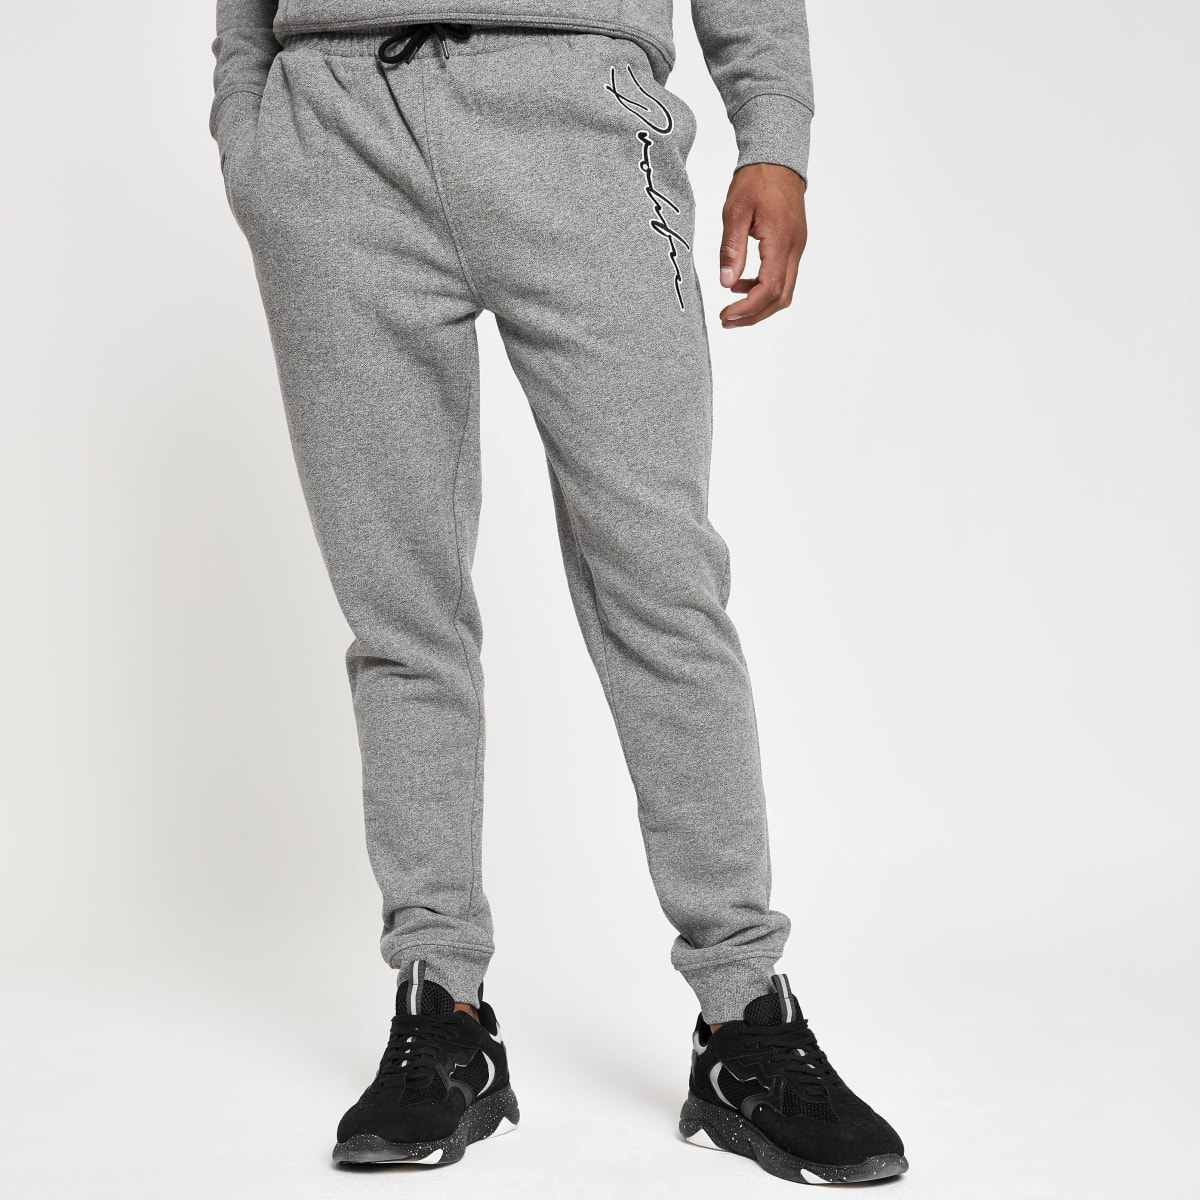 Prolific – Pantalons de jogging slim gris clair